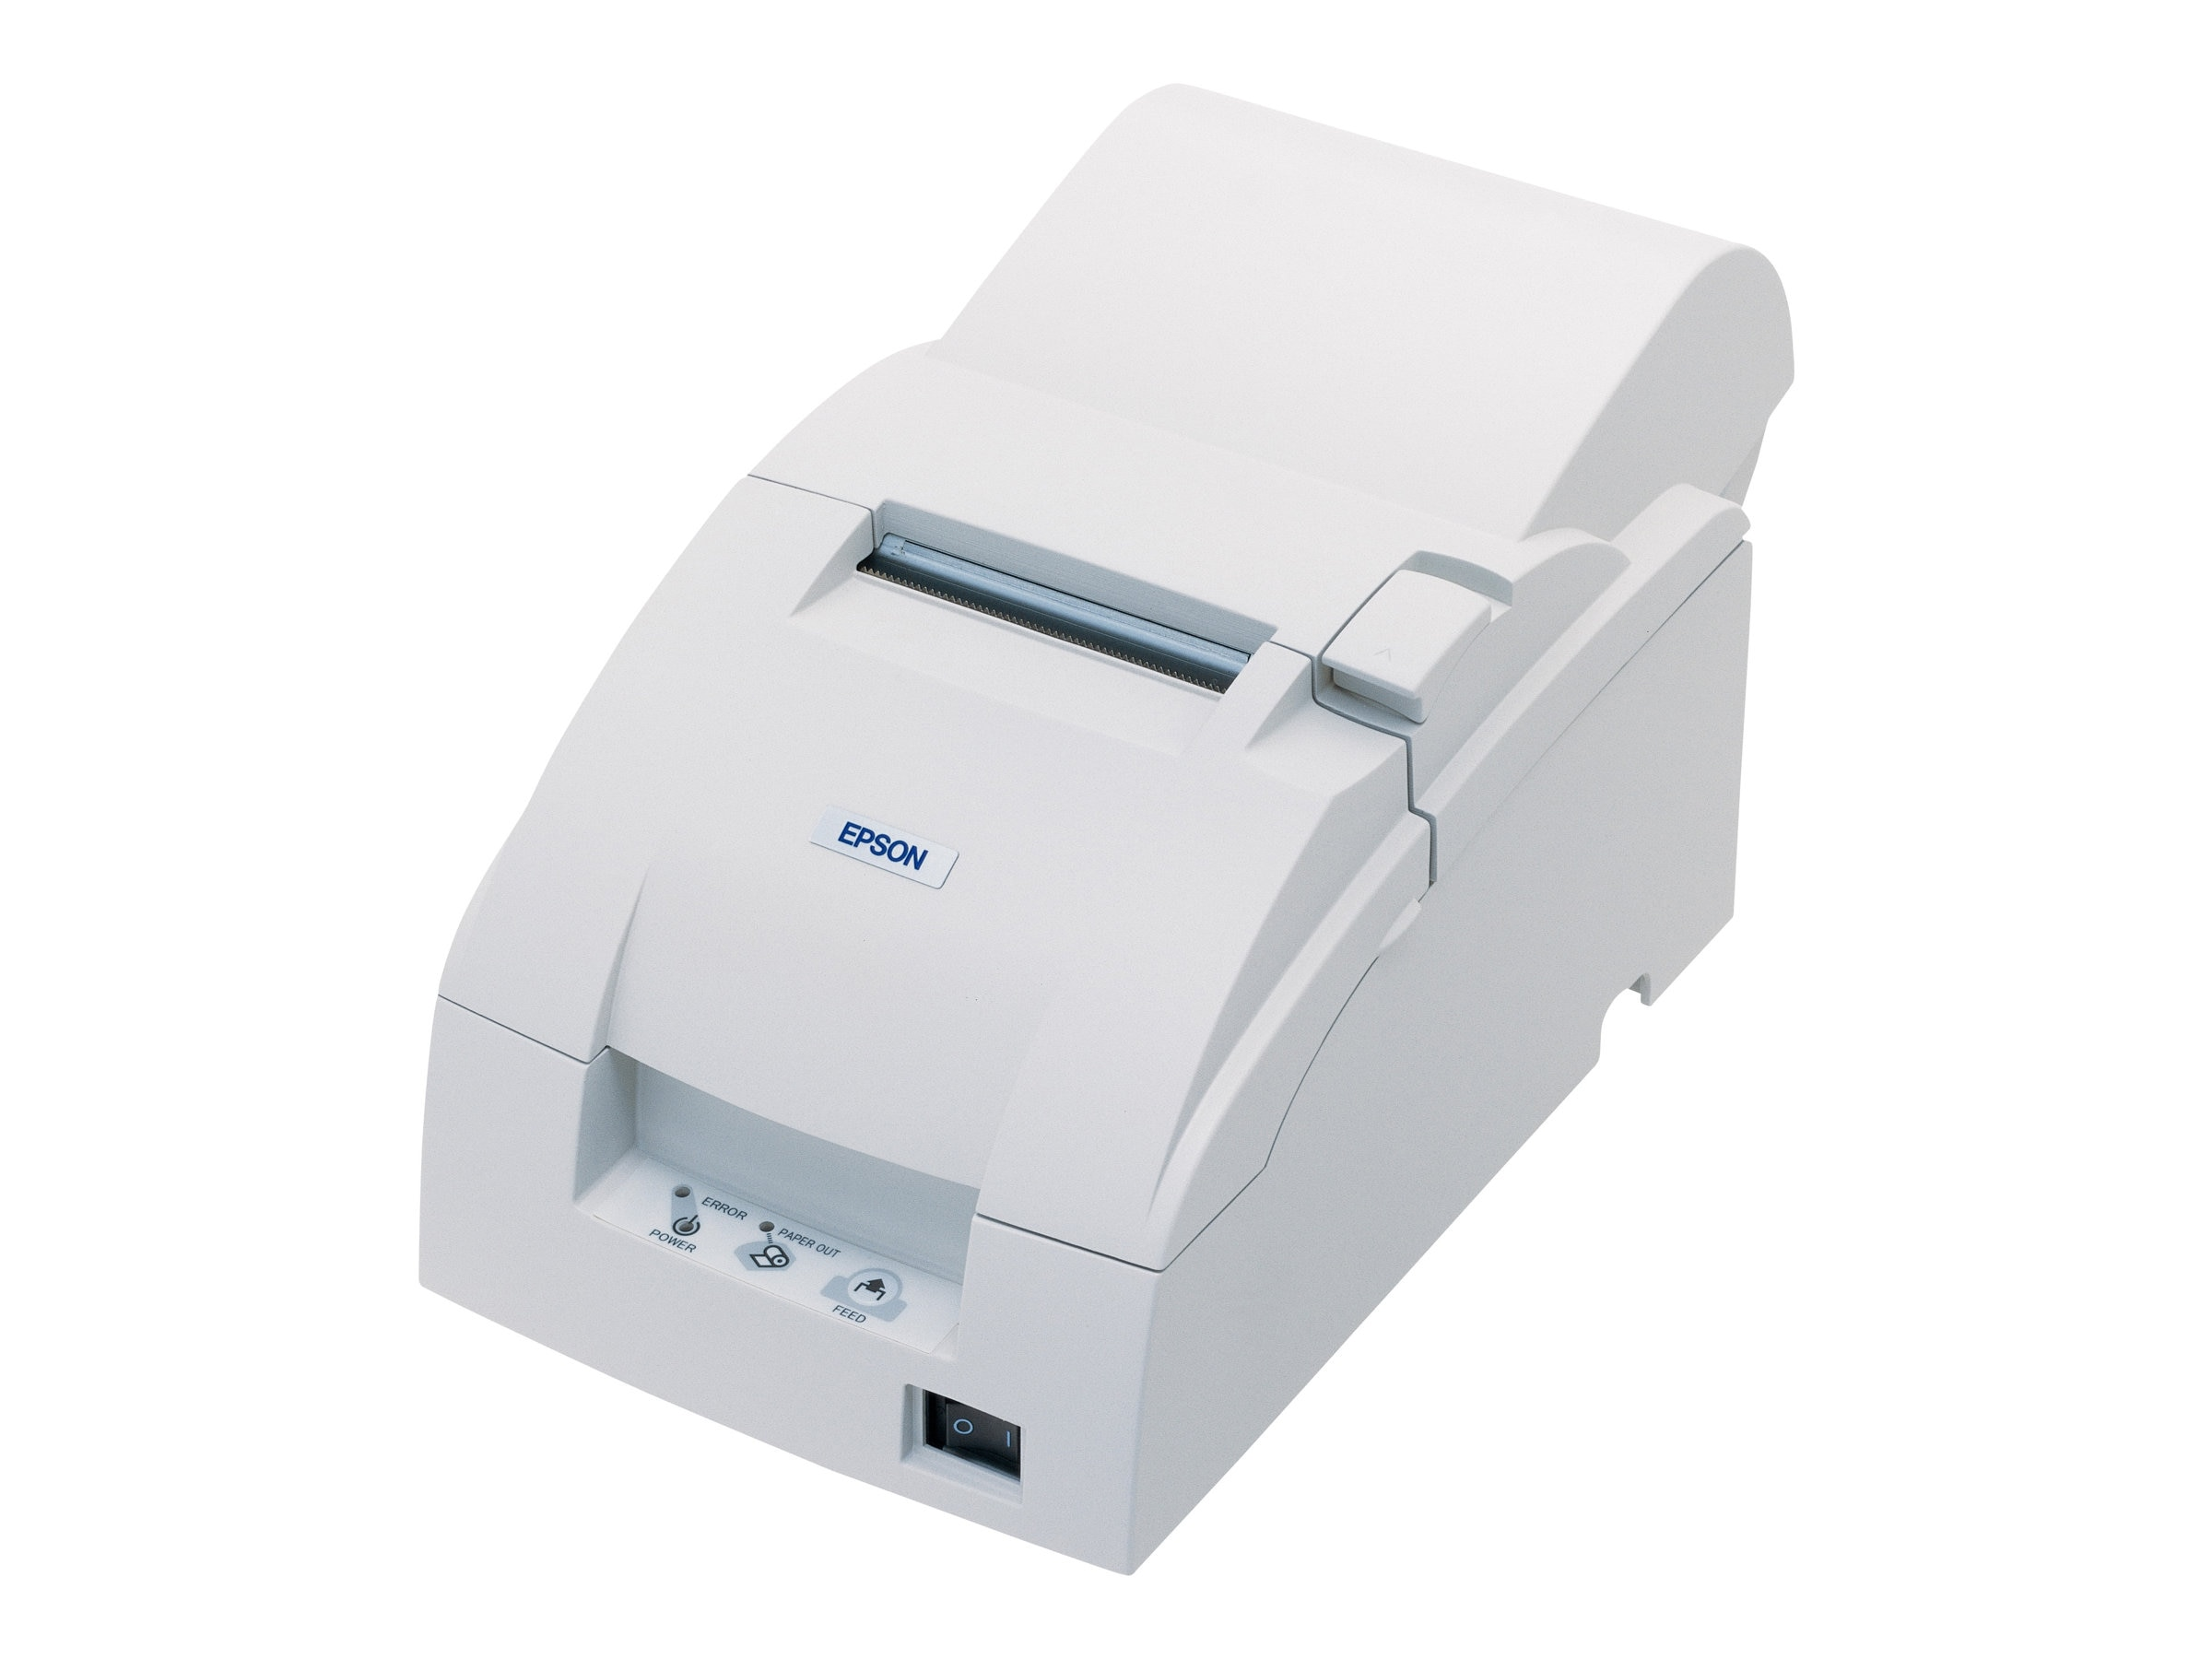 Epson TM-U220A-898 Dot Matrix USB Receipt Printer - Cool White, C31C513A8981, 13115211, Printers - POS Receipt